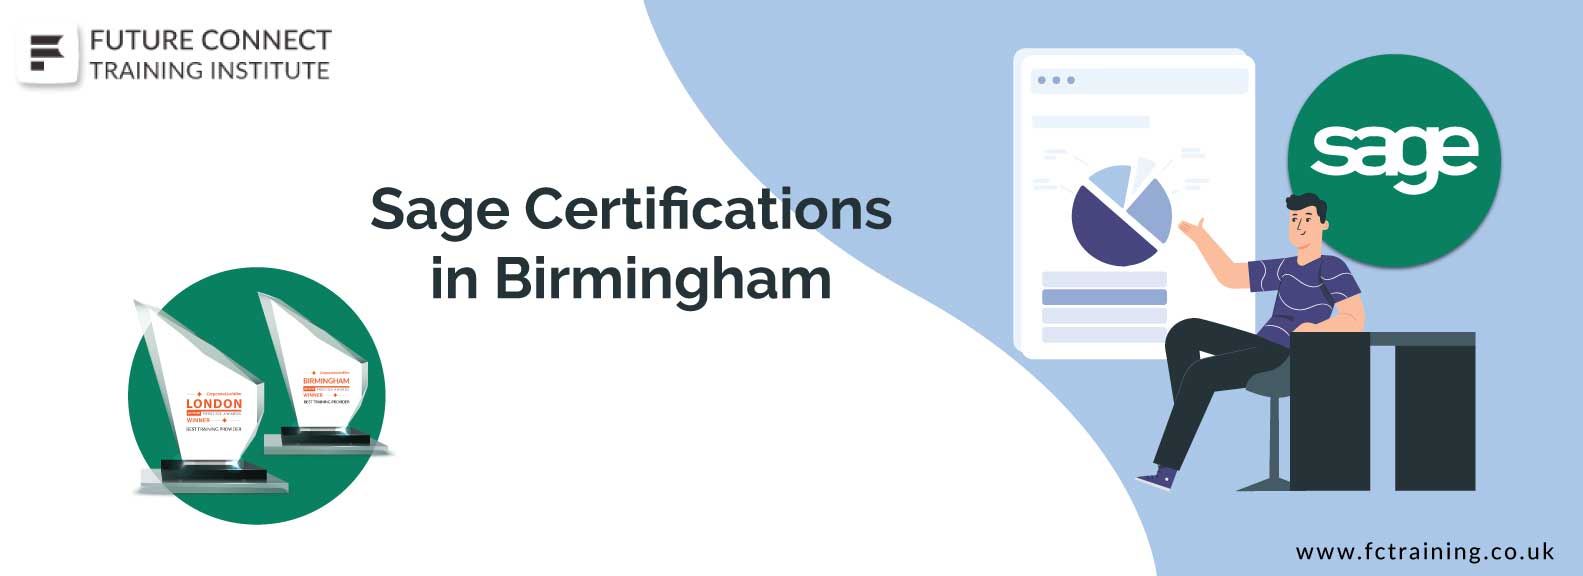 Sage Certifications in Birmingham